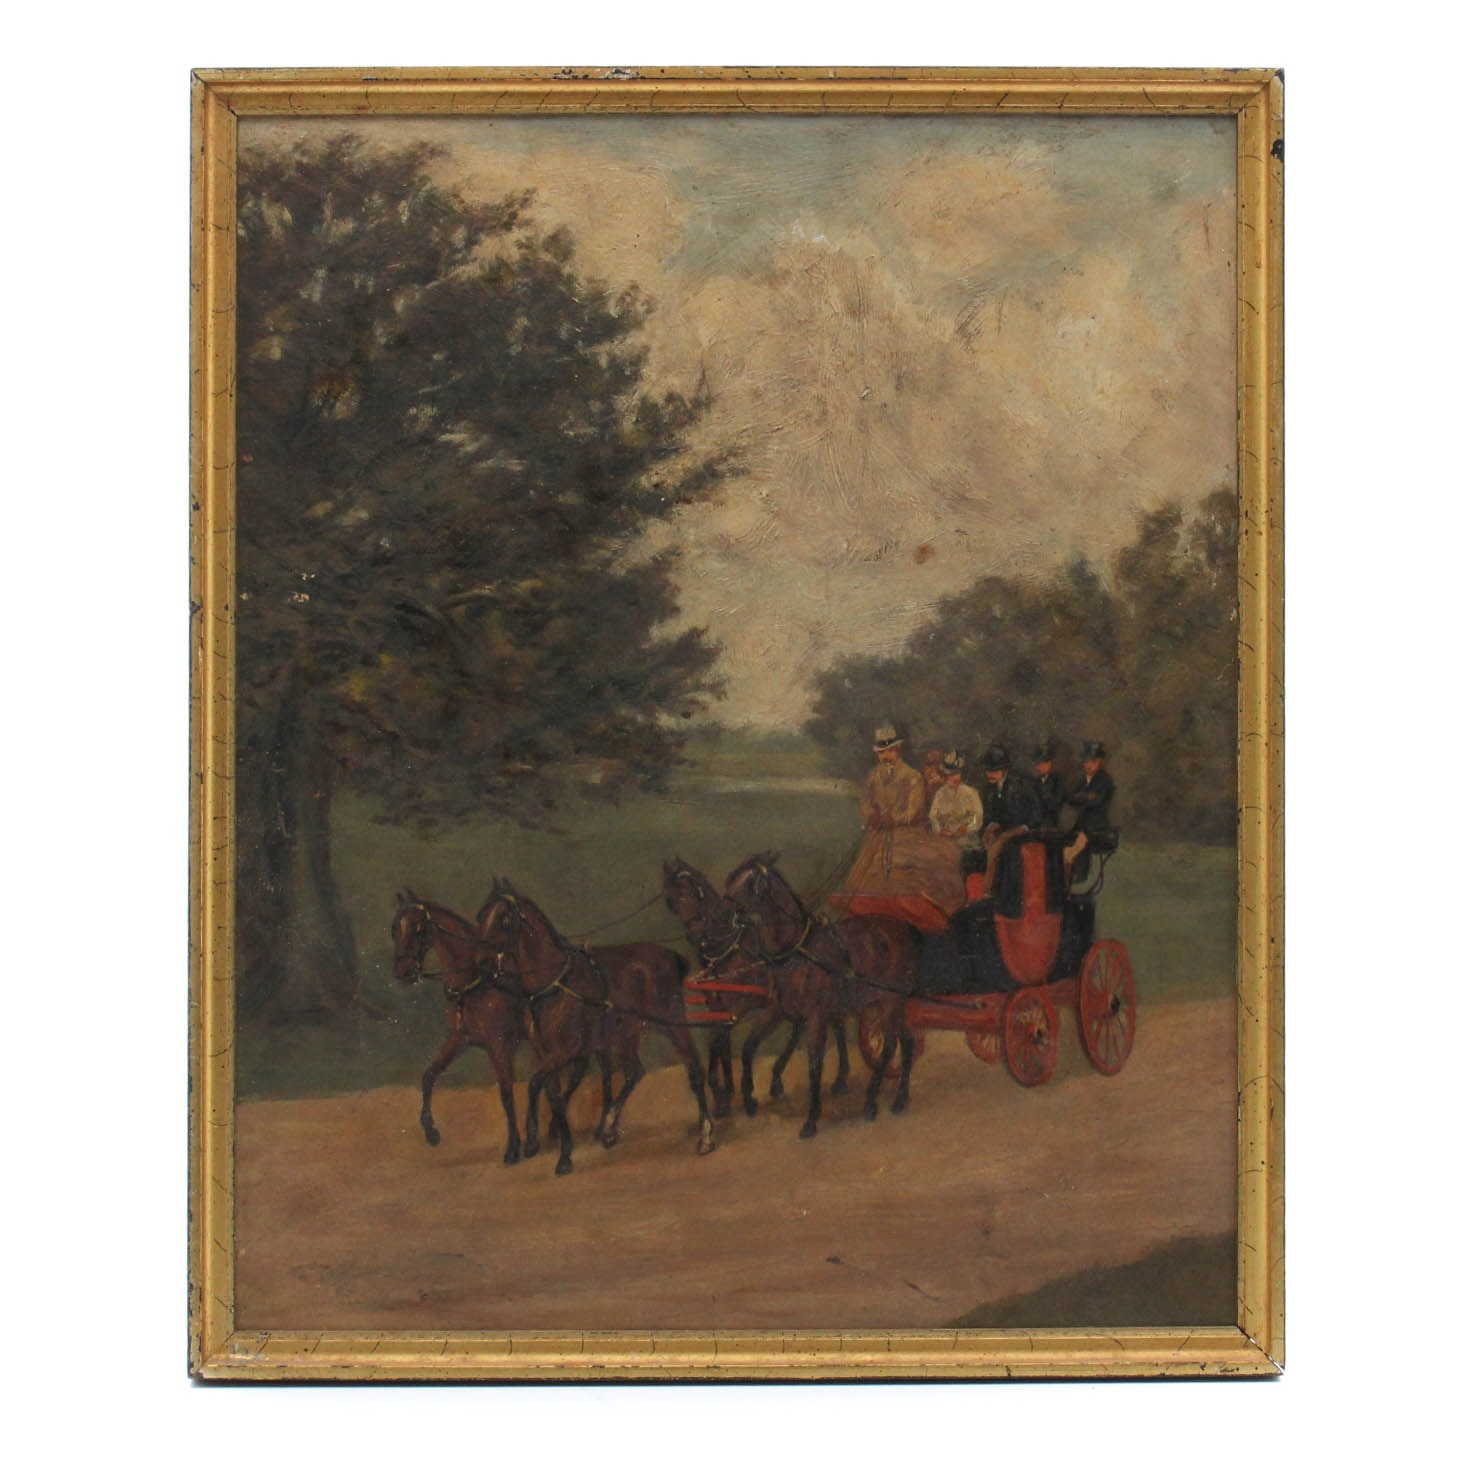 Antique European Two-Sided Painting